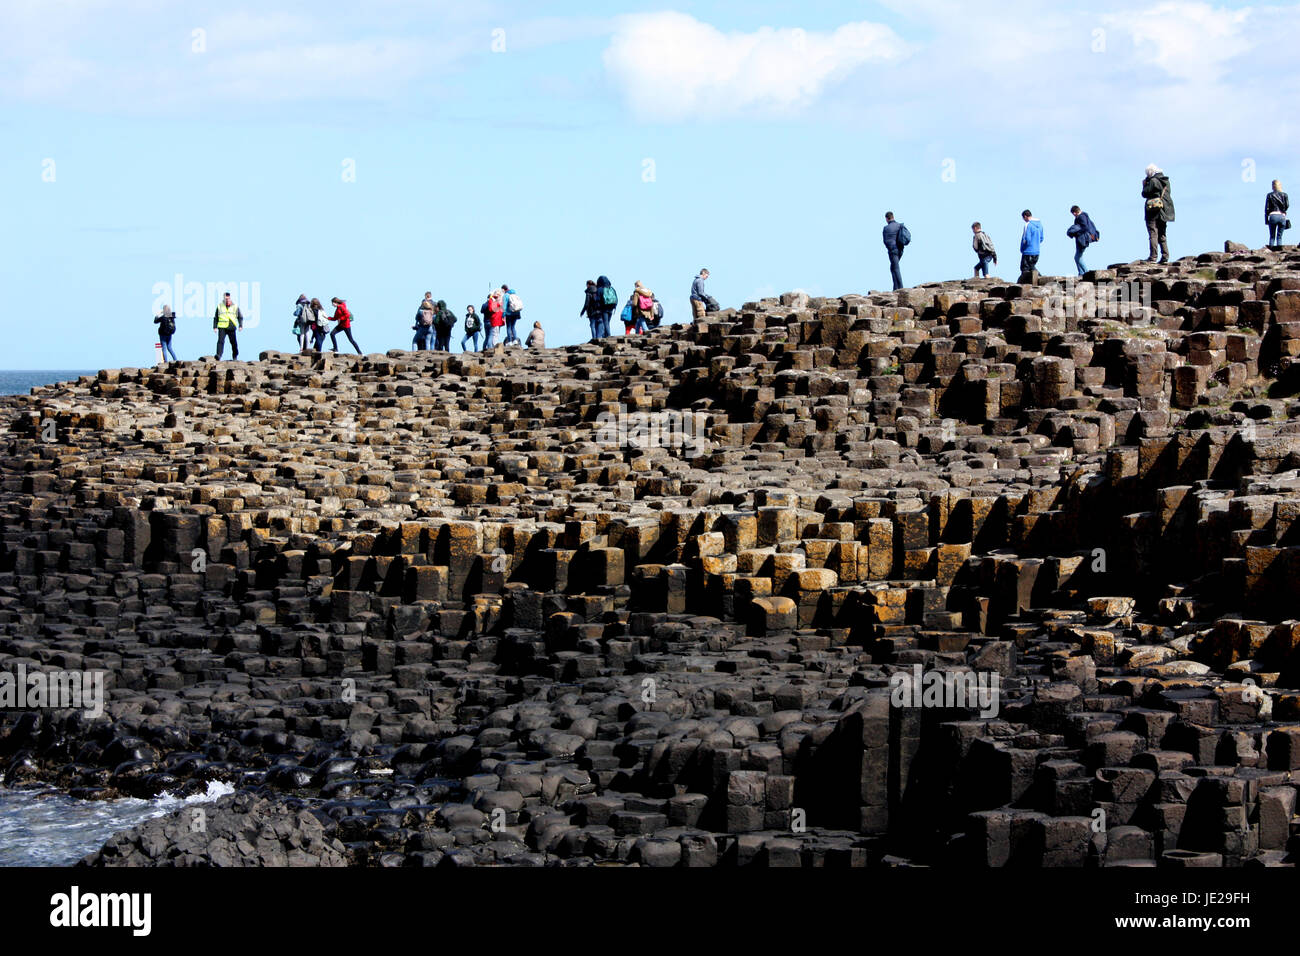 People on the Giant's Causeway, Antrim - Stock Image